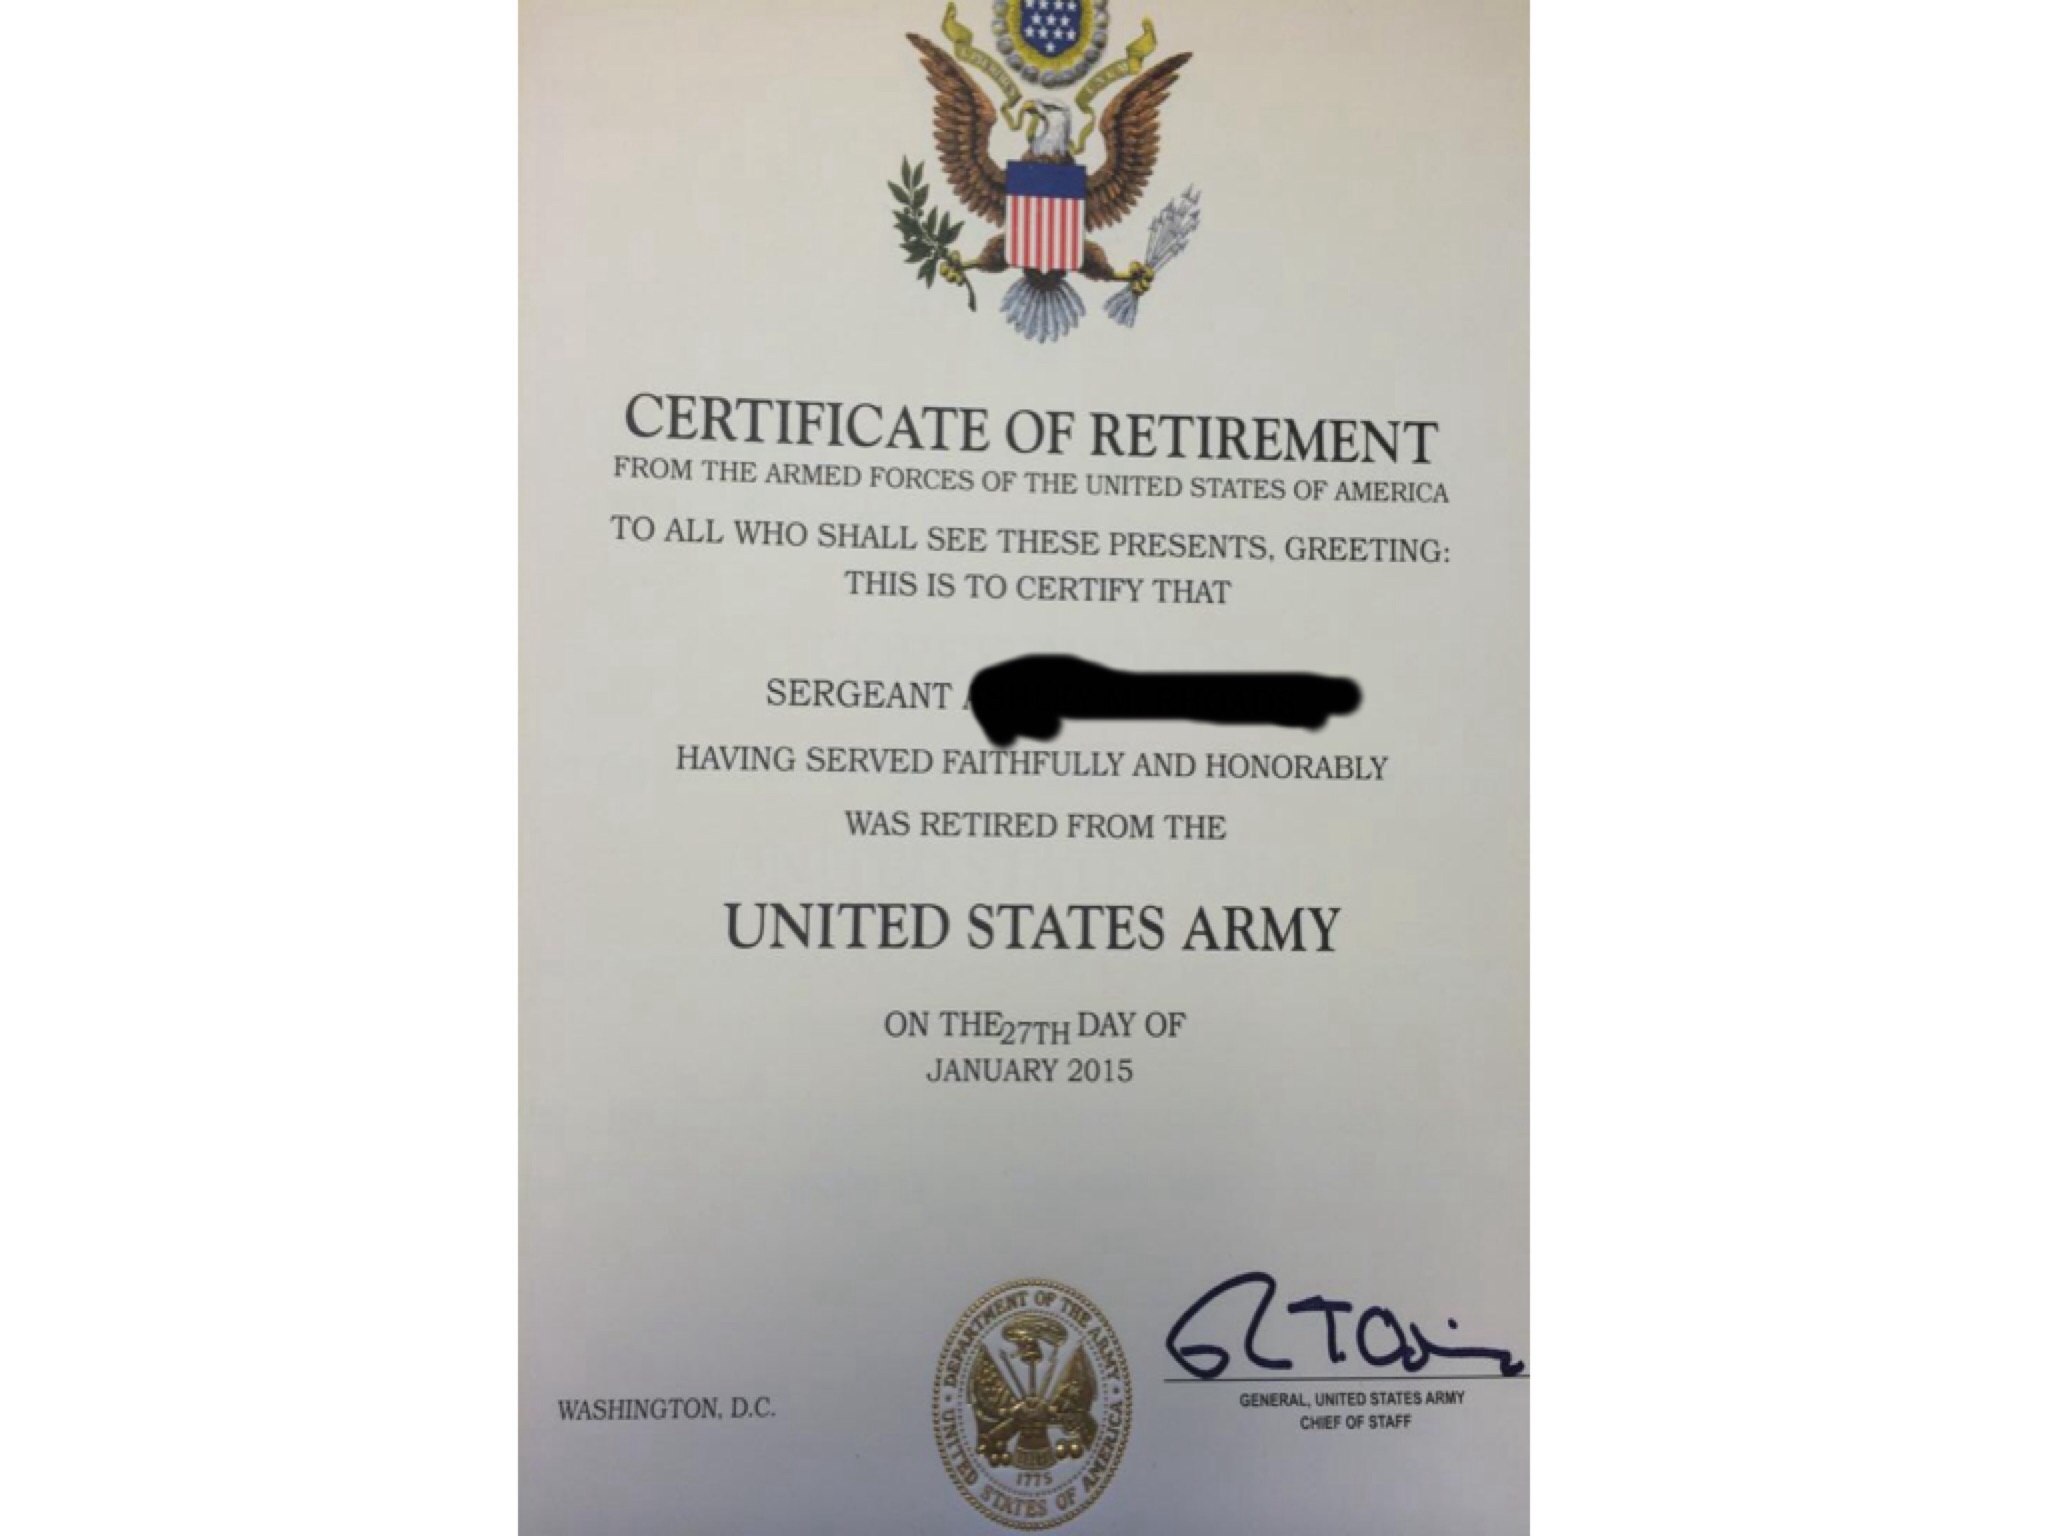 Should Medically Retired Get The Same Certificate As Those That Did